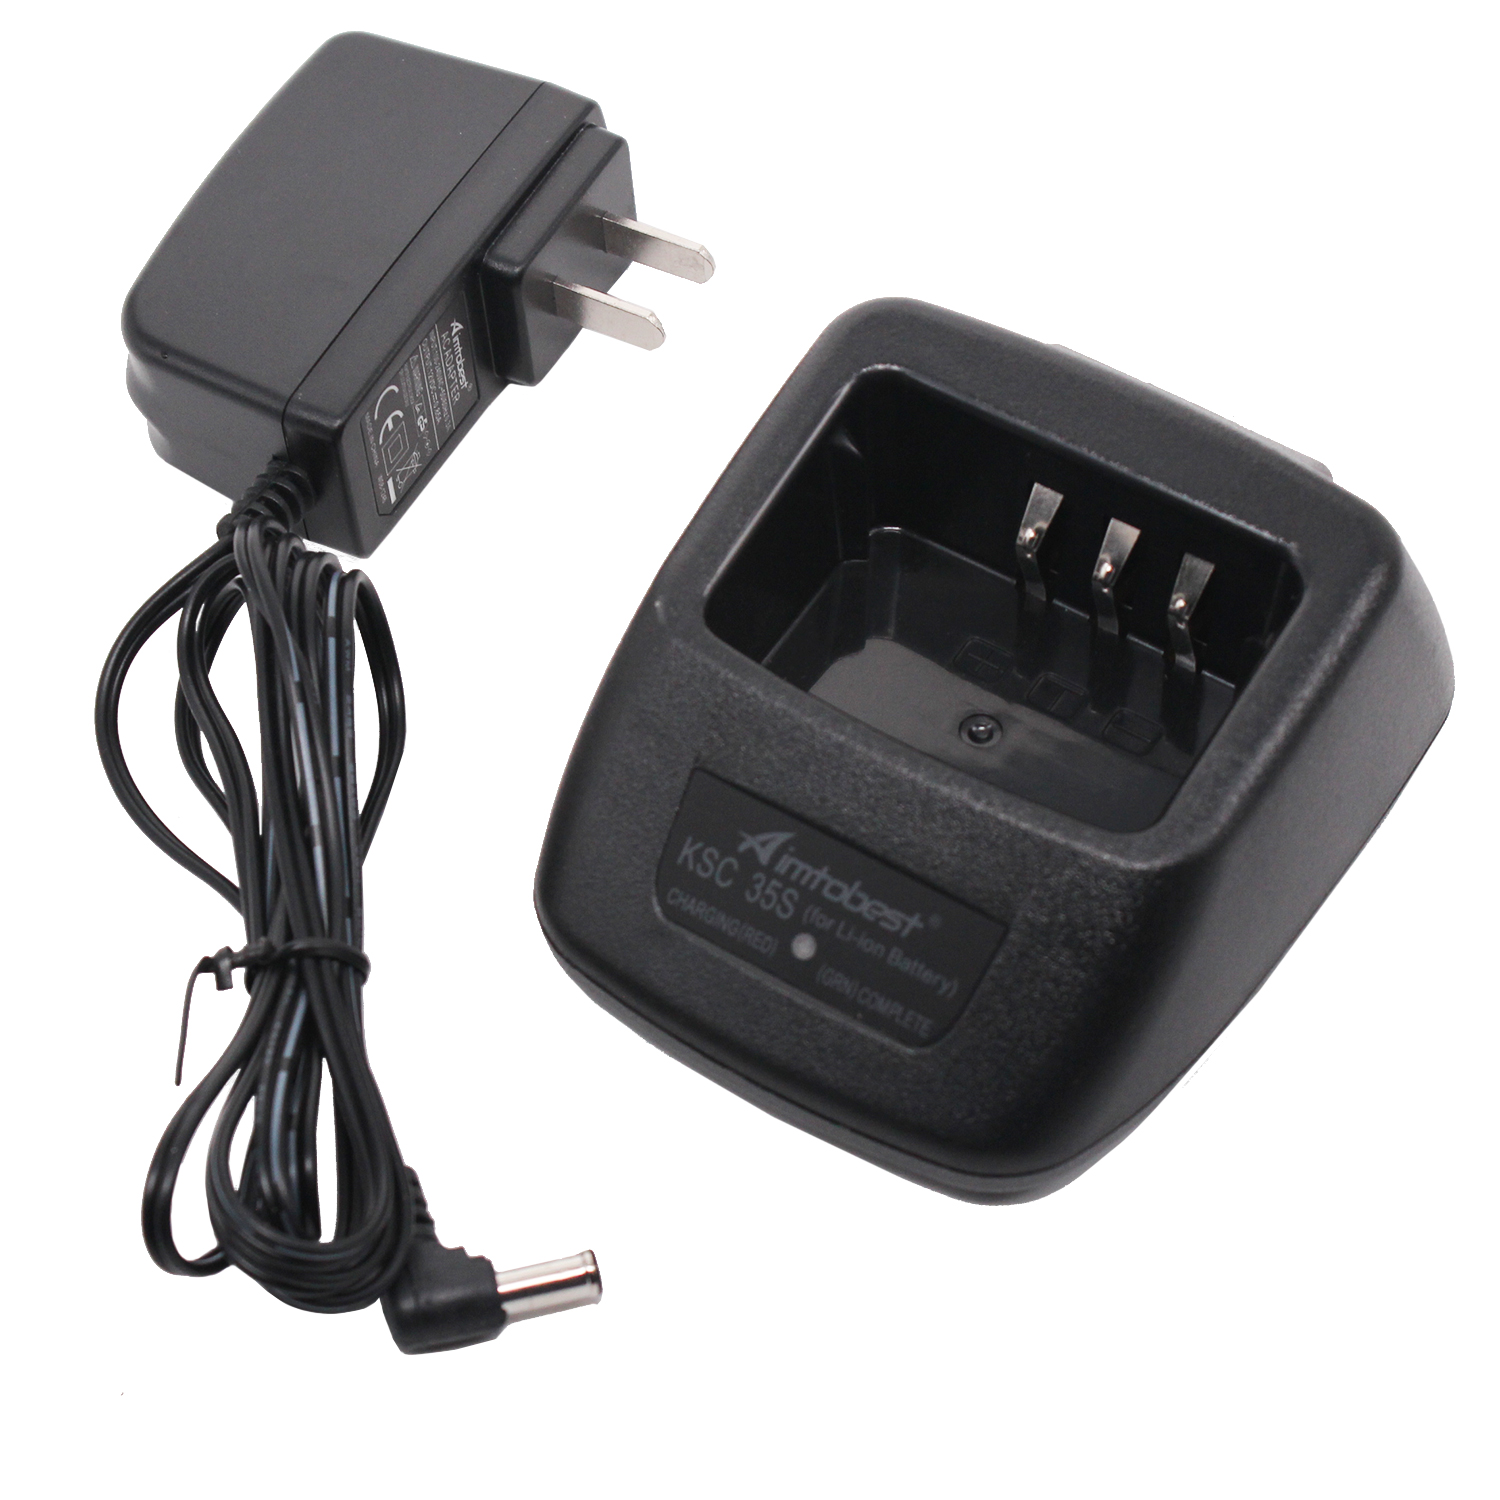 KSC-35S Rapid Charger for KENWOOD TK-3000 TK-2000 KNB-63L KNB-65L KNB-45L TK-3400 TK2400 TK-3301 TK-3501 TK-U100 TH-K20E TH-K40AKSC-35S Rapid Charger for KENWOOD TK-3000 TK-2000 KNB-63L KNB-65L KNB-45L TK-3400 TK2400 TK-3301 TK-3501 TK-U100 TH-K20E TH-K40A